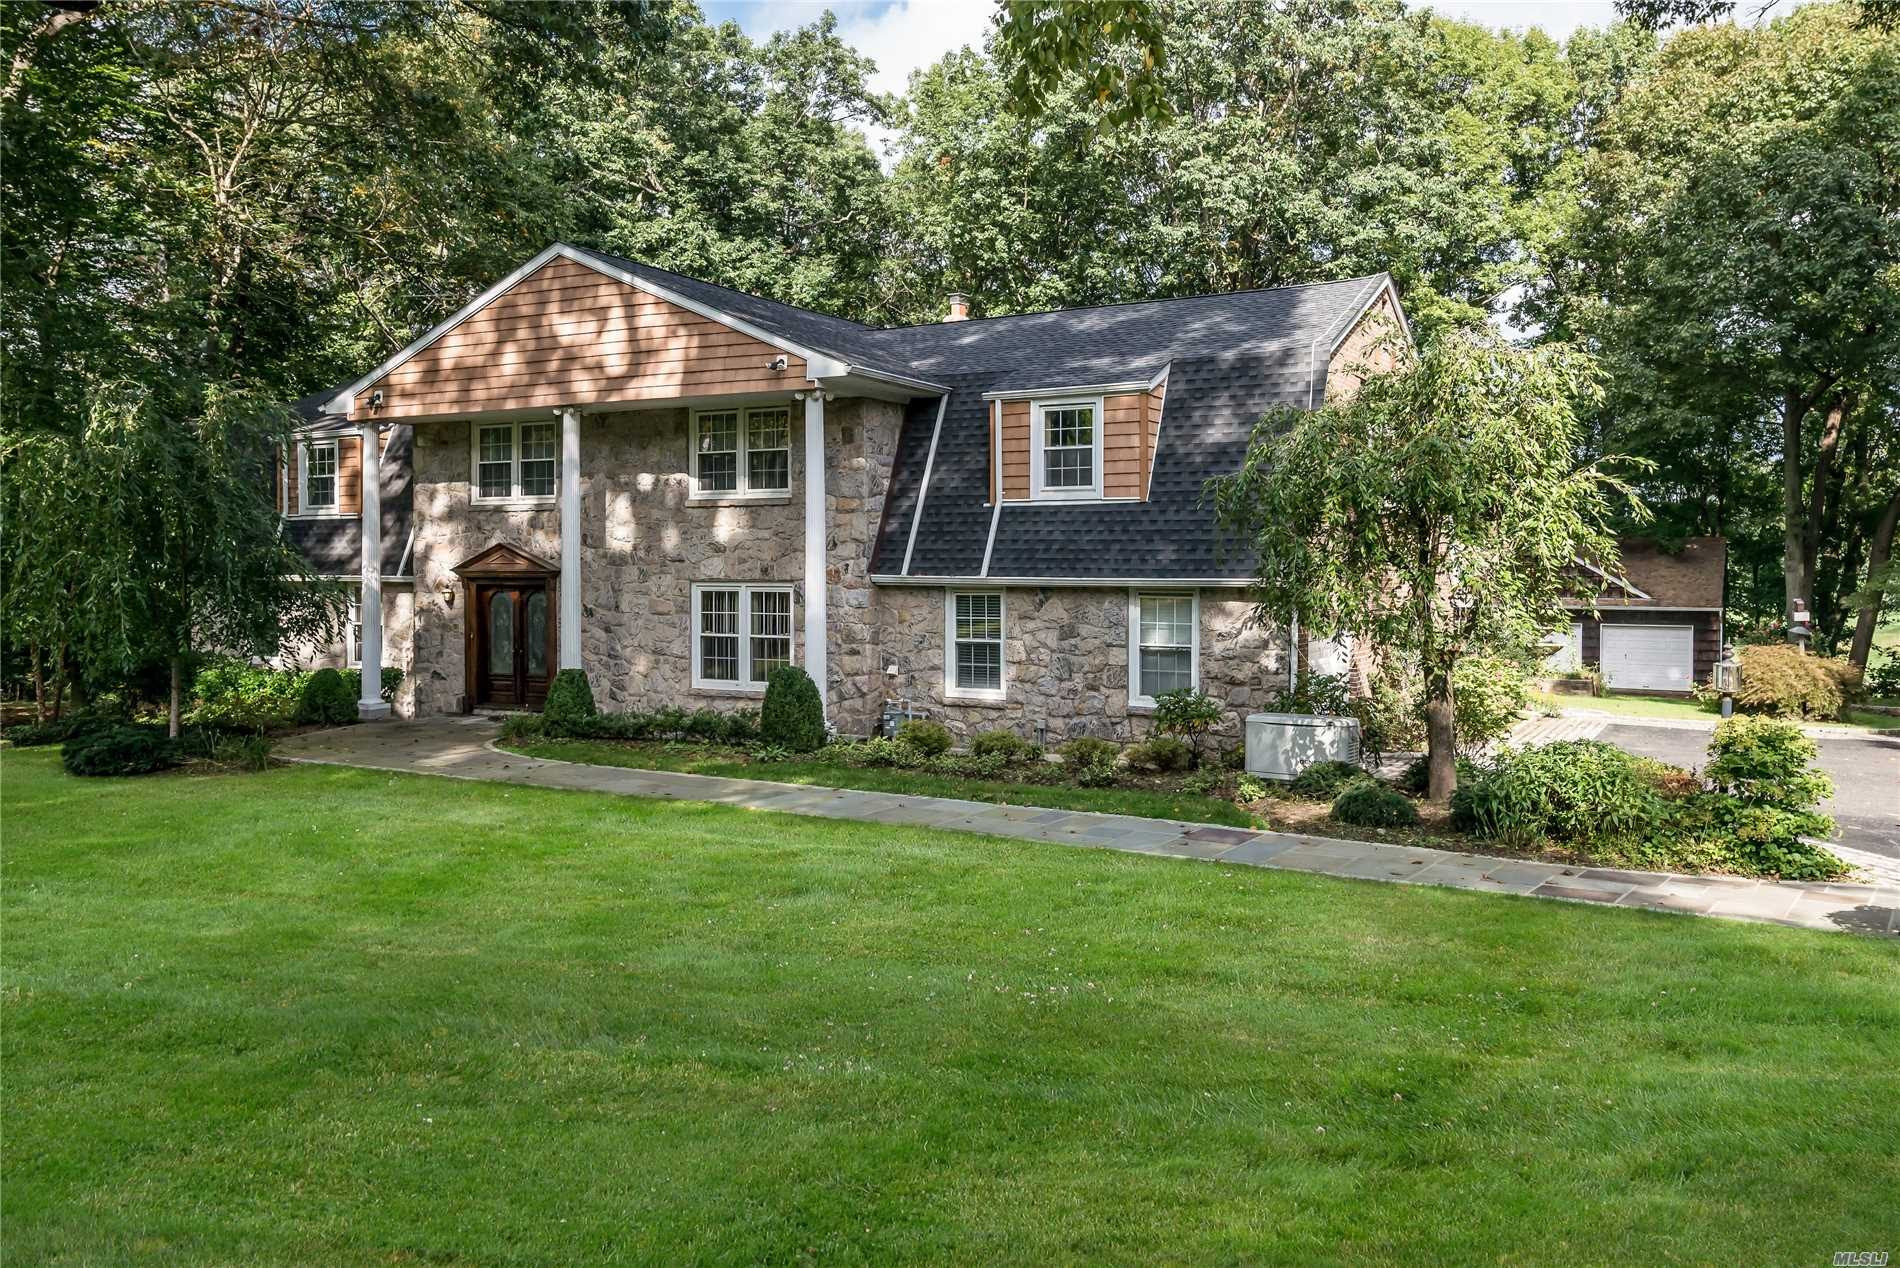 Custom Built Colonial Offers All The Features Today's Buyers Desire. Spacious Rooms Throughout With The Most Amazing Kitchen & Great Room Overlooking Spectacular Views Of Engineers Golf Course, Nestled On 2.25 Private Acres, 3 Car Detached Garage, This Private Location Is Yet Very Convenient To Everything.